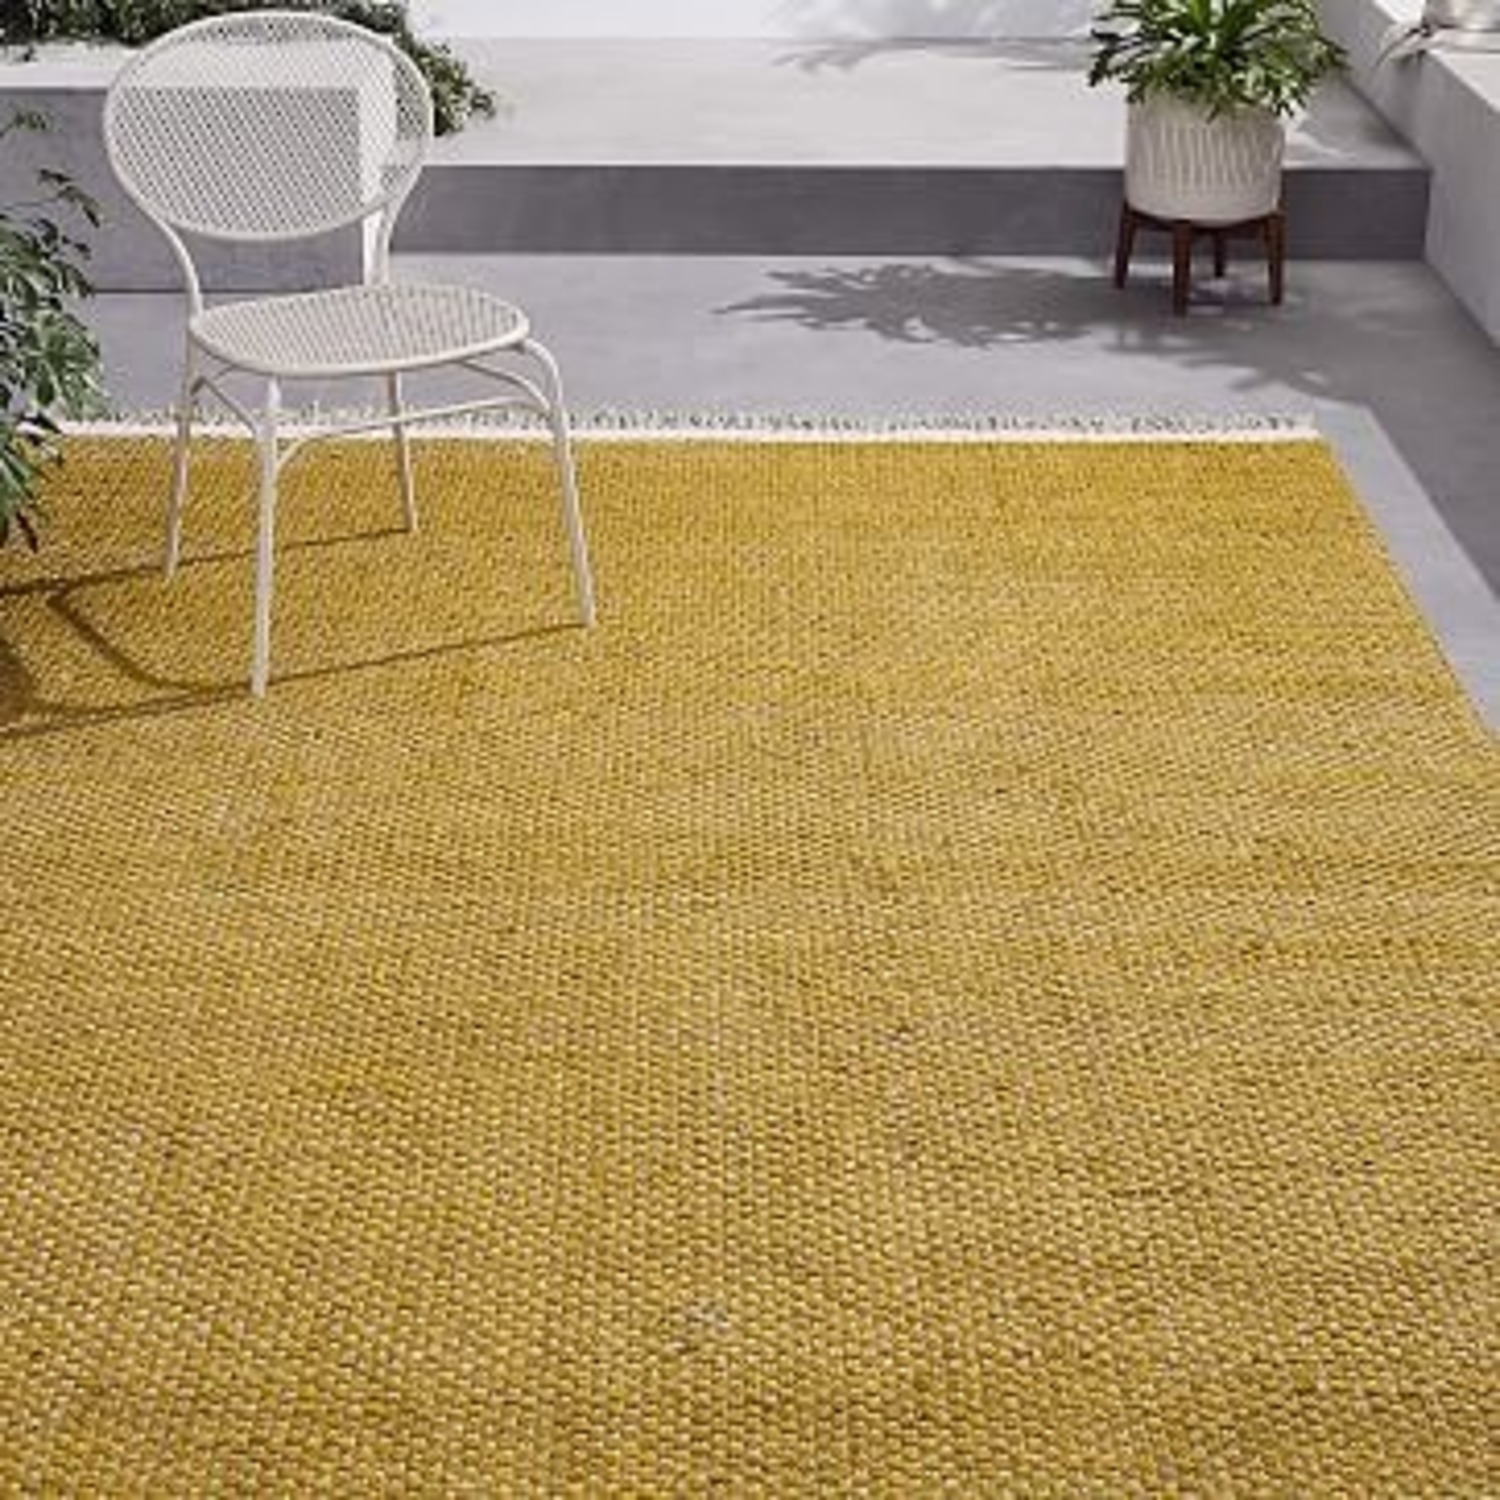 West Elm Rope Crossweave Indoor/Outdoor Rug - image-3